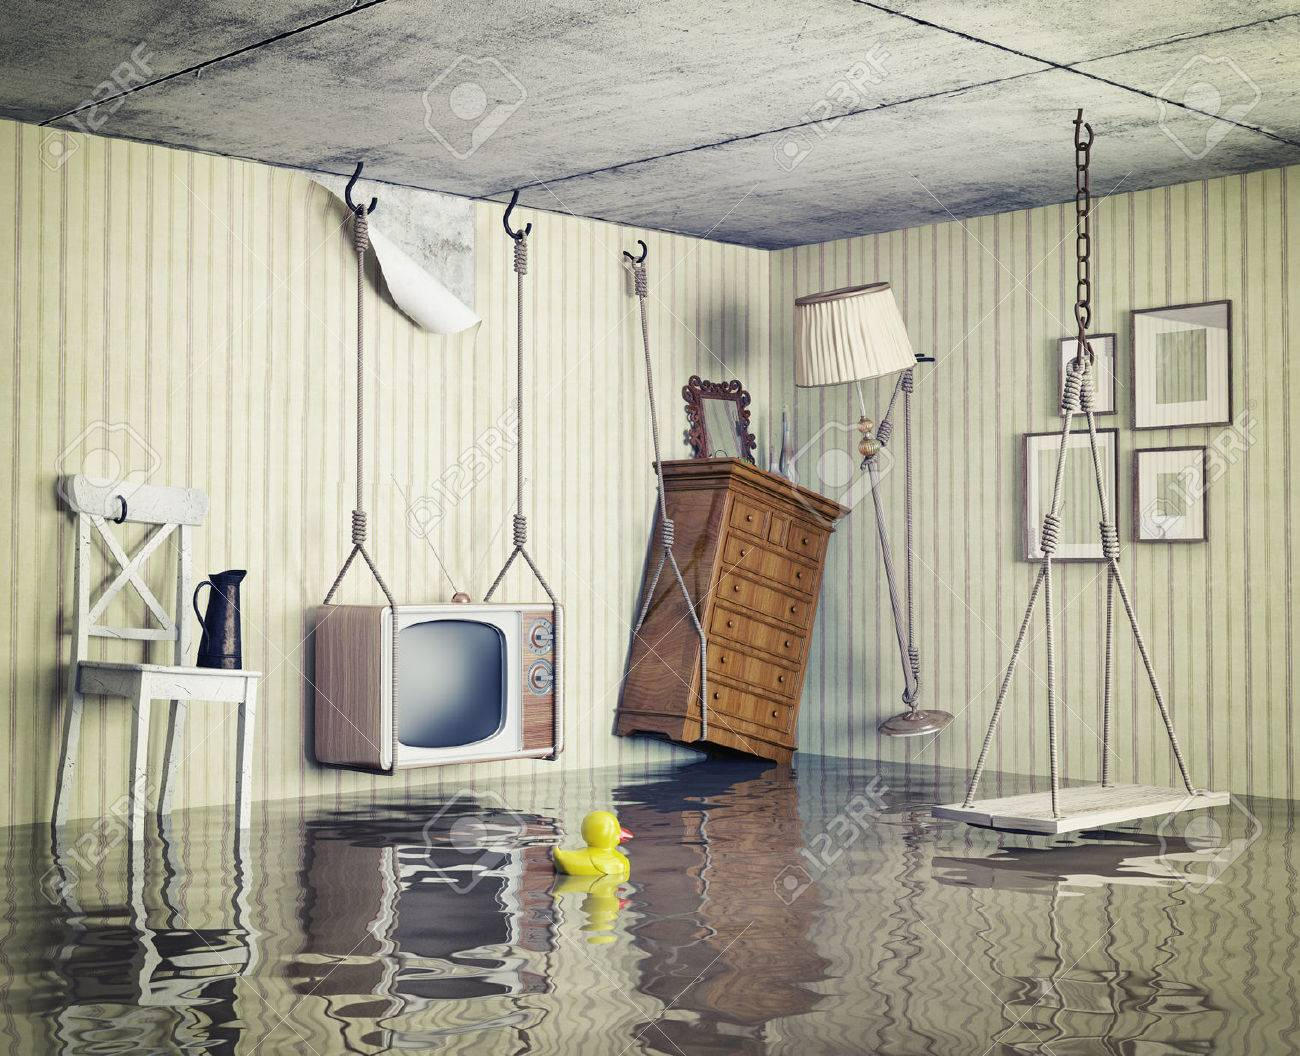 ordinary life in the flooded flat. 3d concept - 28469758